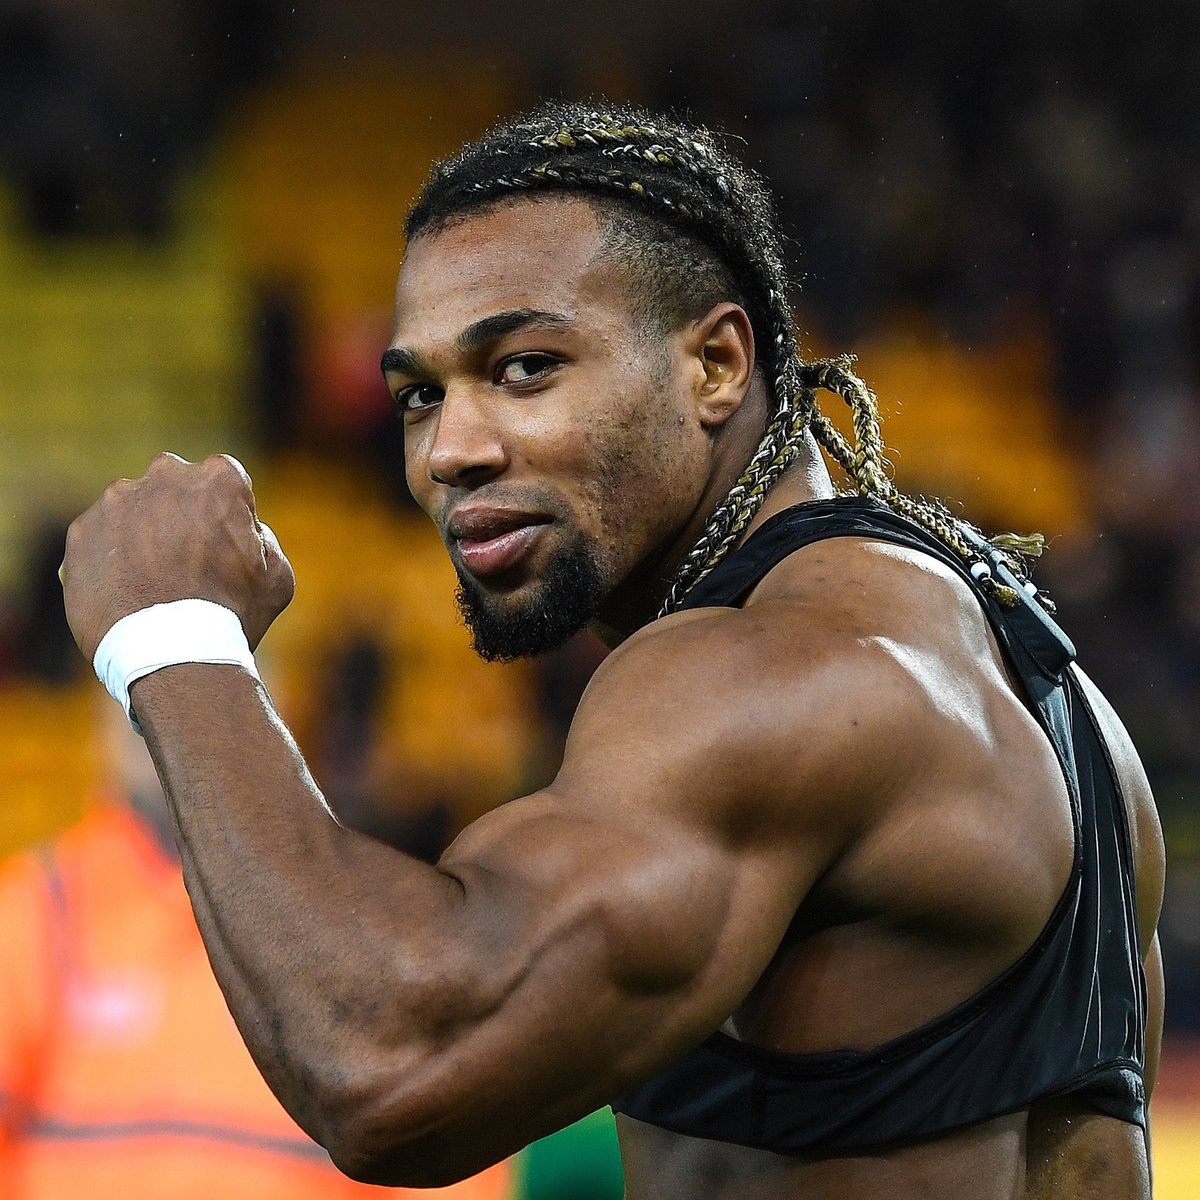 Football Factly On Twitter Adama Traore I Don T Do Weights I Know It S Hard To Believe I Do Zero Weights It S Genetic I Do Some Exercises But Not Too Much Either